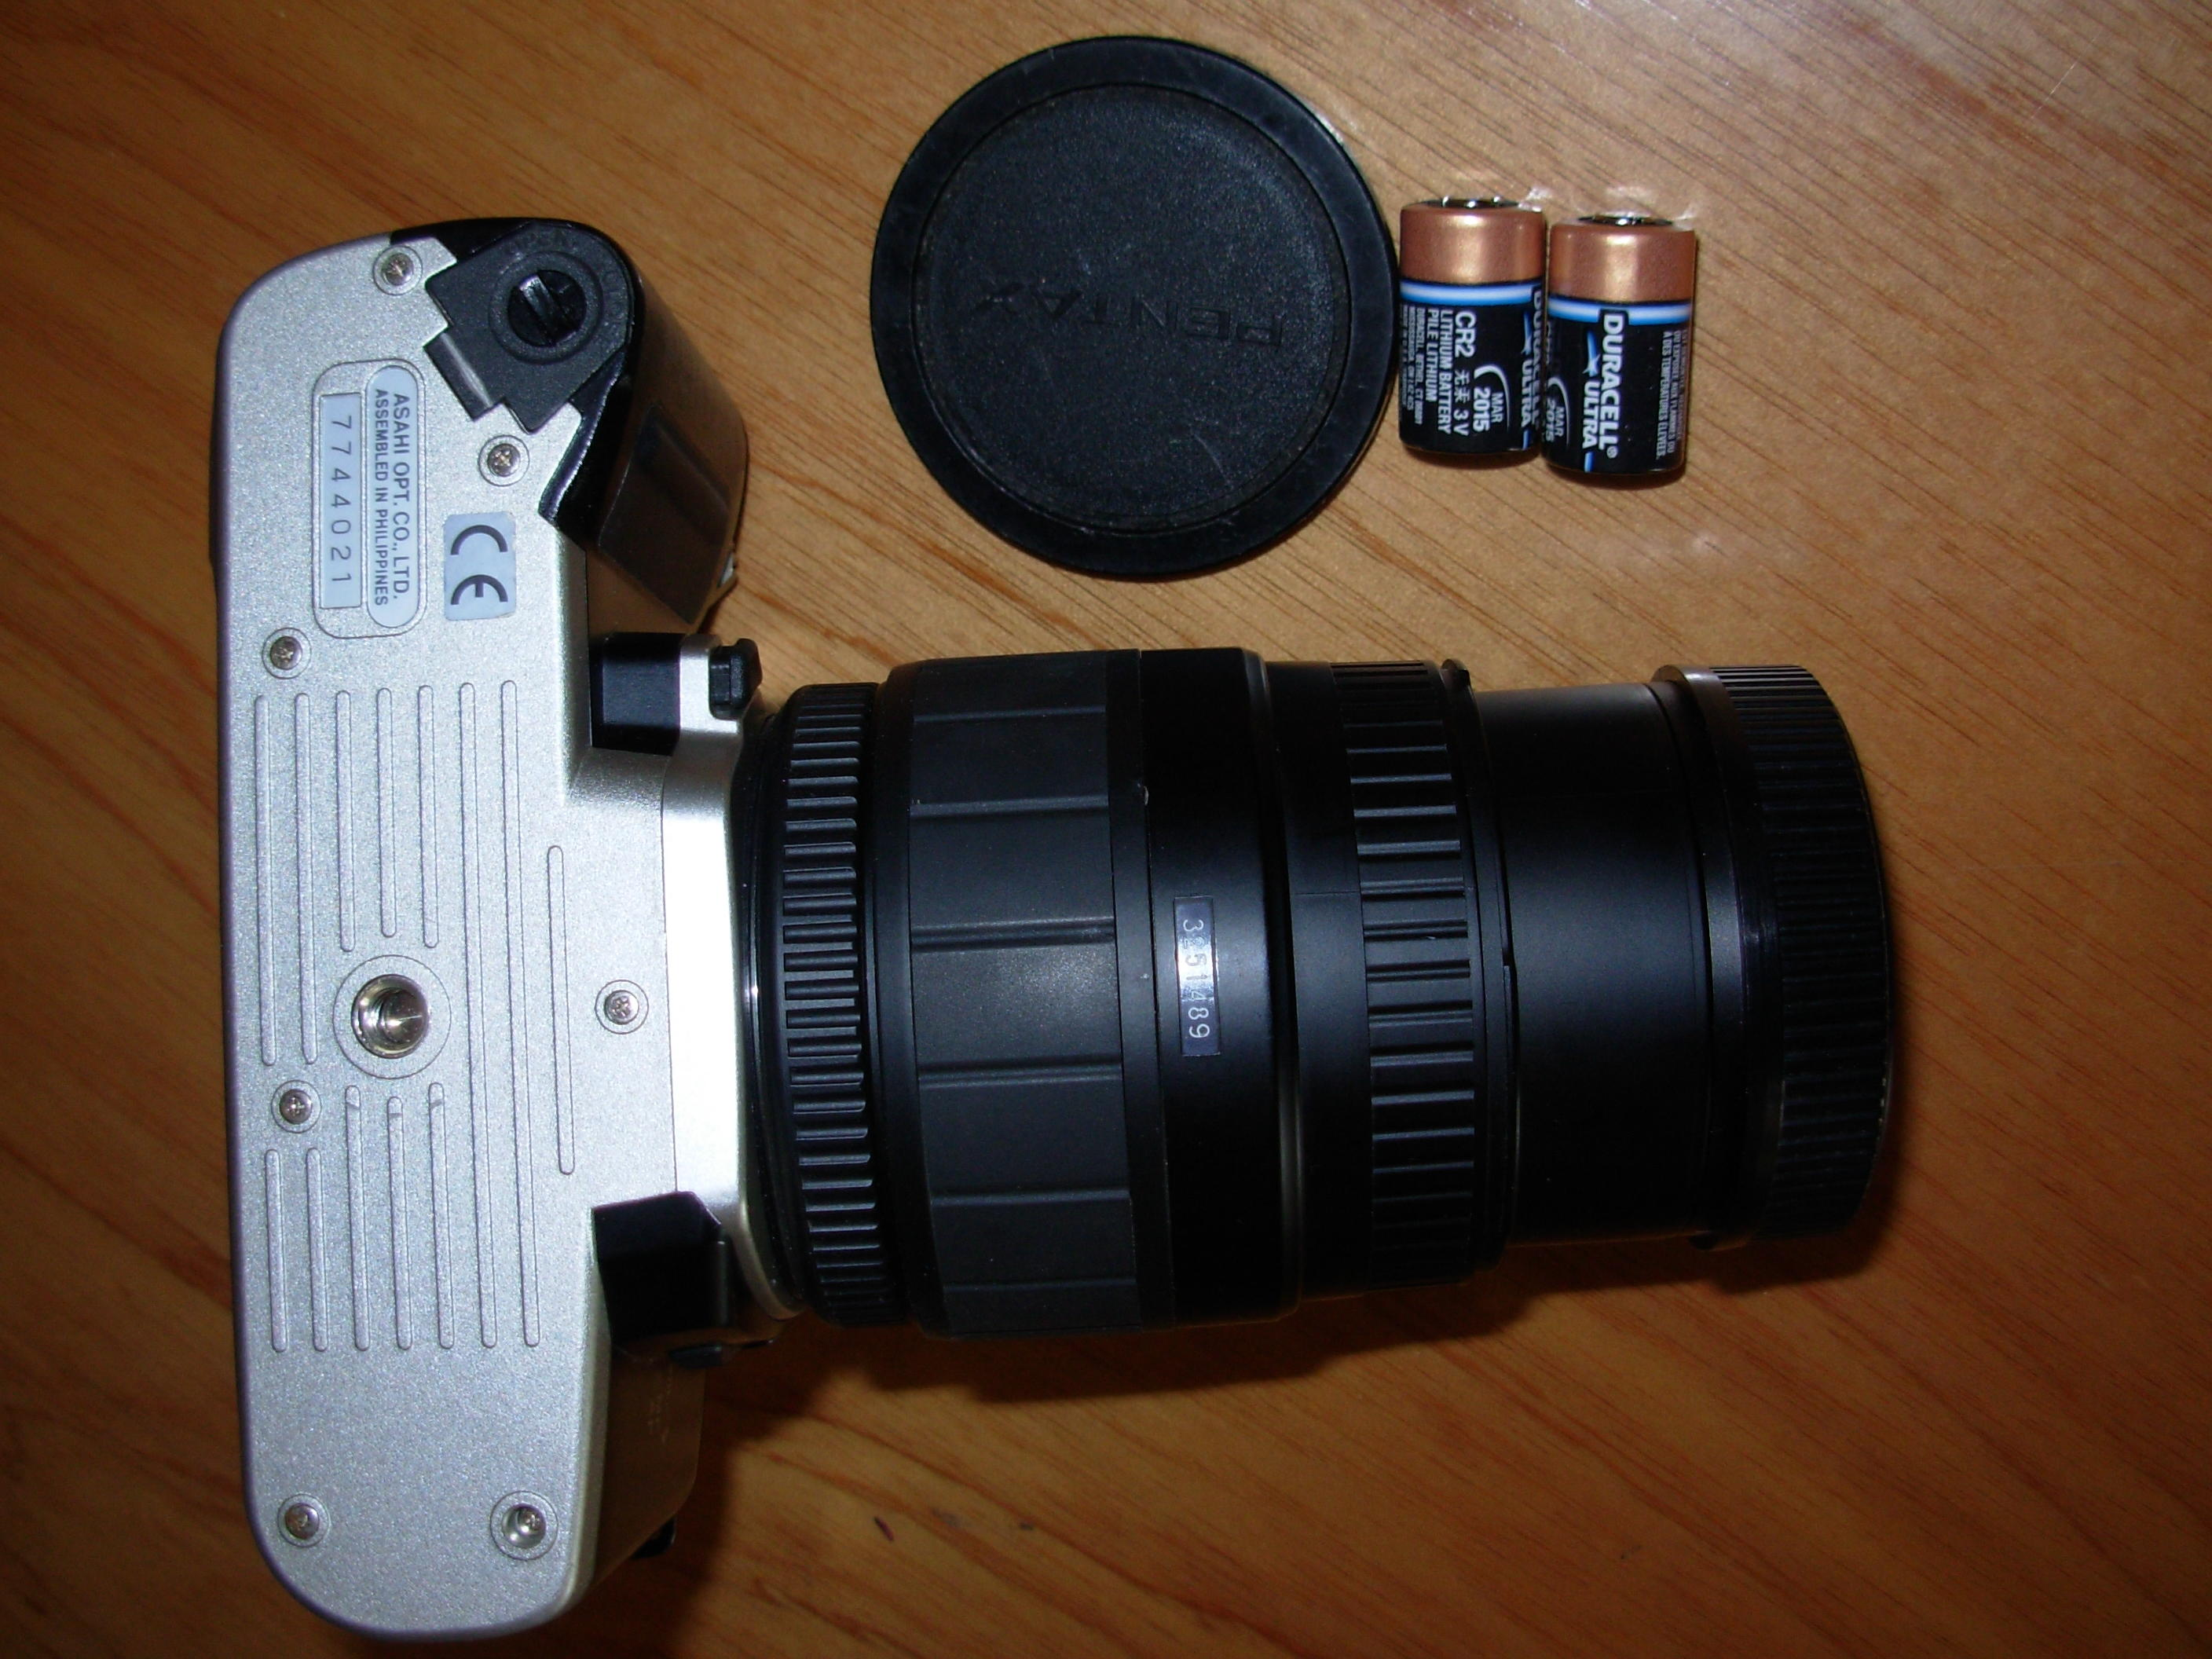 This should be pentax-1.jpeg.  Is it missing?